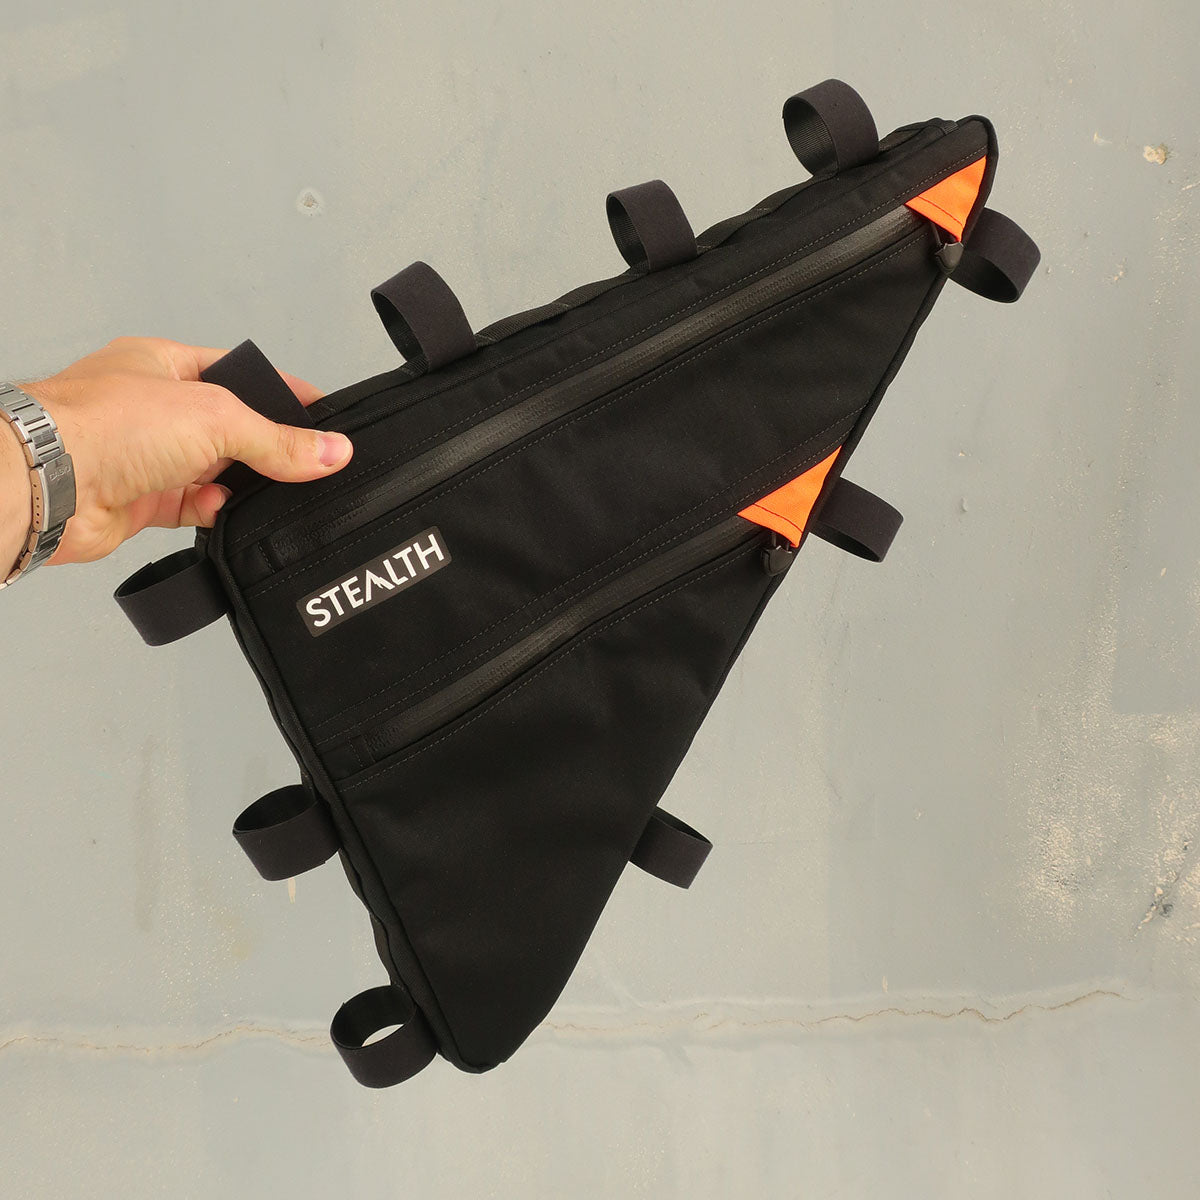 Custom black and orange frame bag